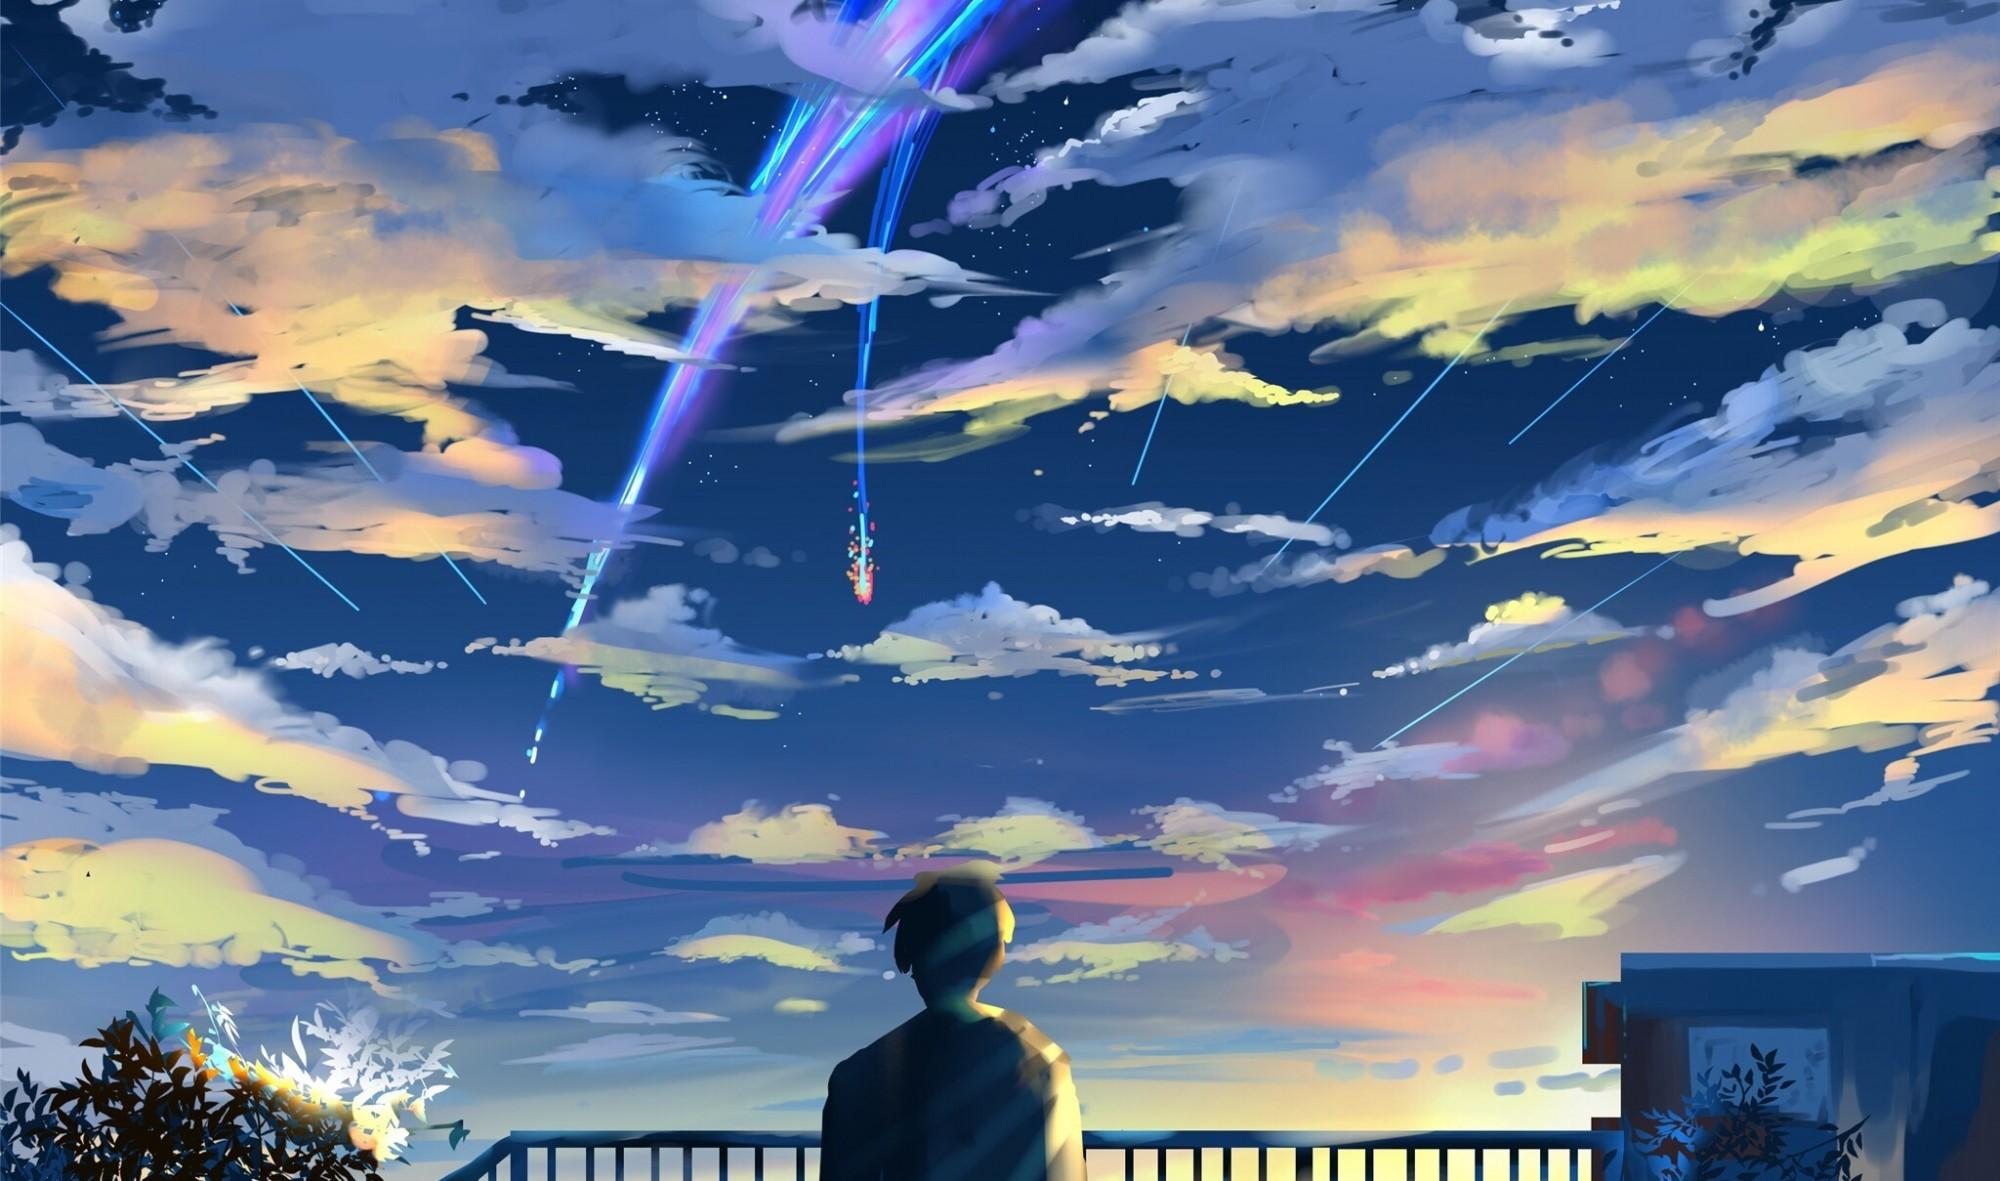 Download 2000x1181 Kimi No Na Wa, Taki Tachibana, Scenic, Your Name